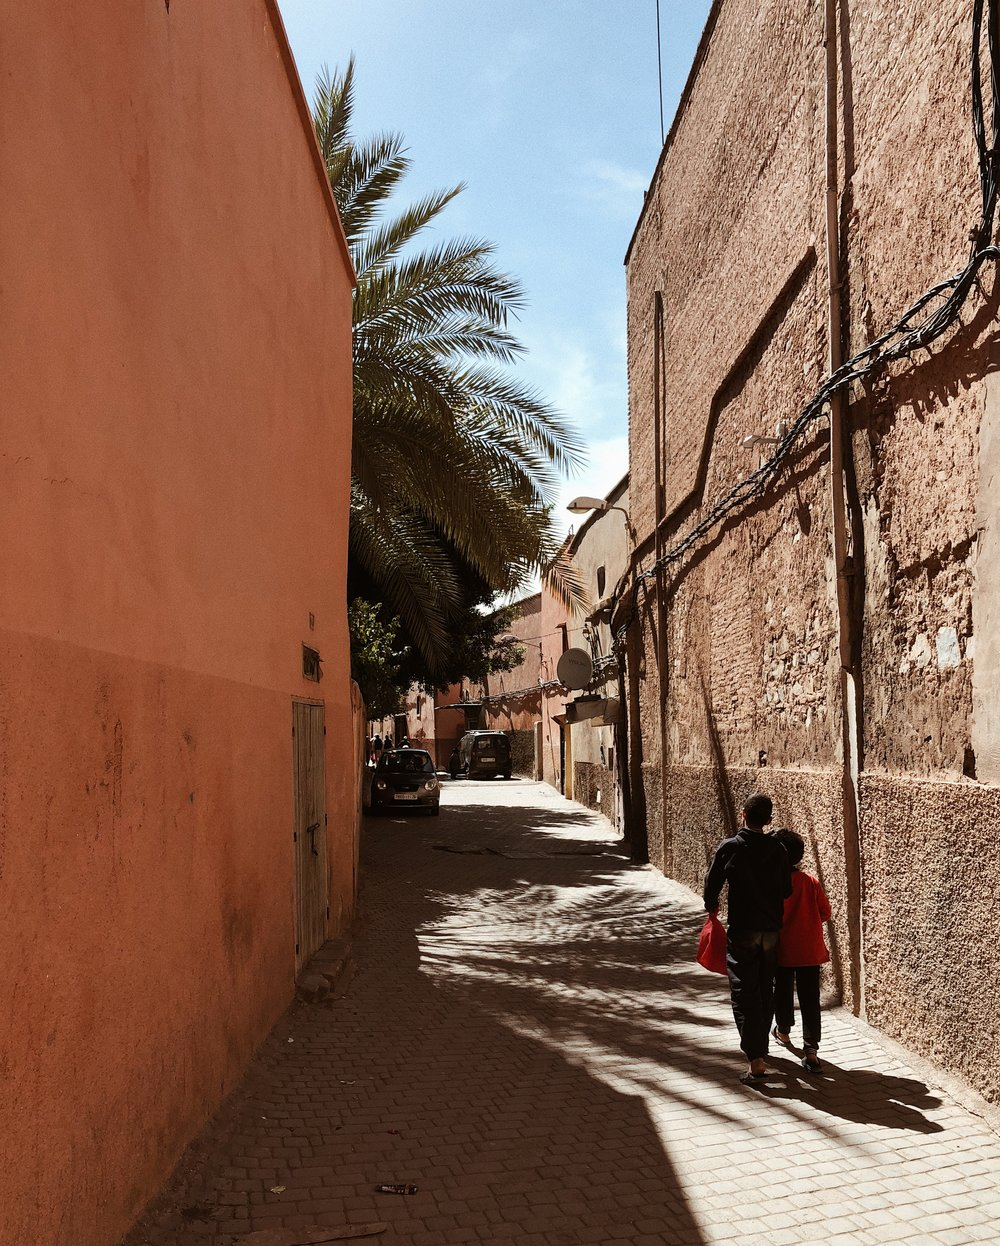 @thestyleseed took a photo of an alleyway in Morocco.